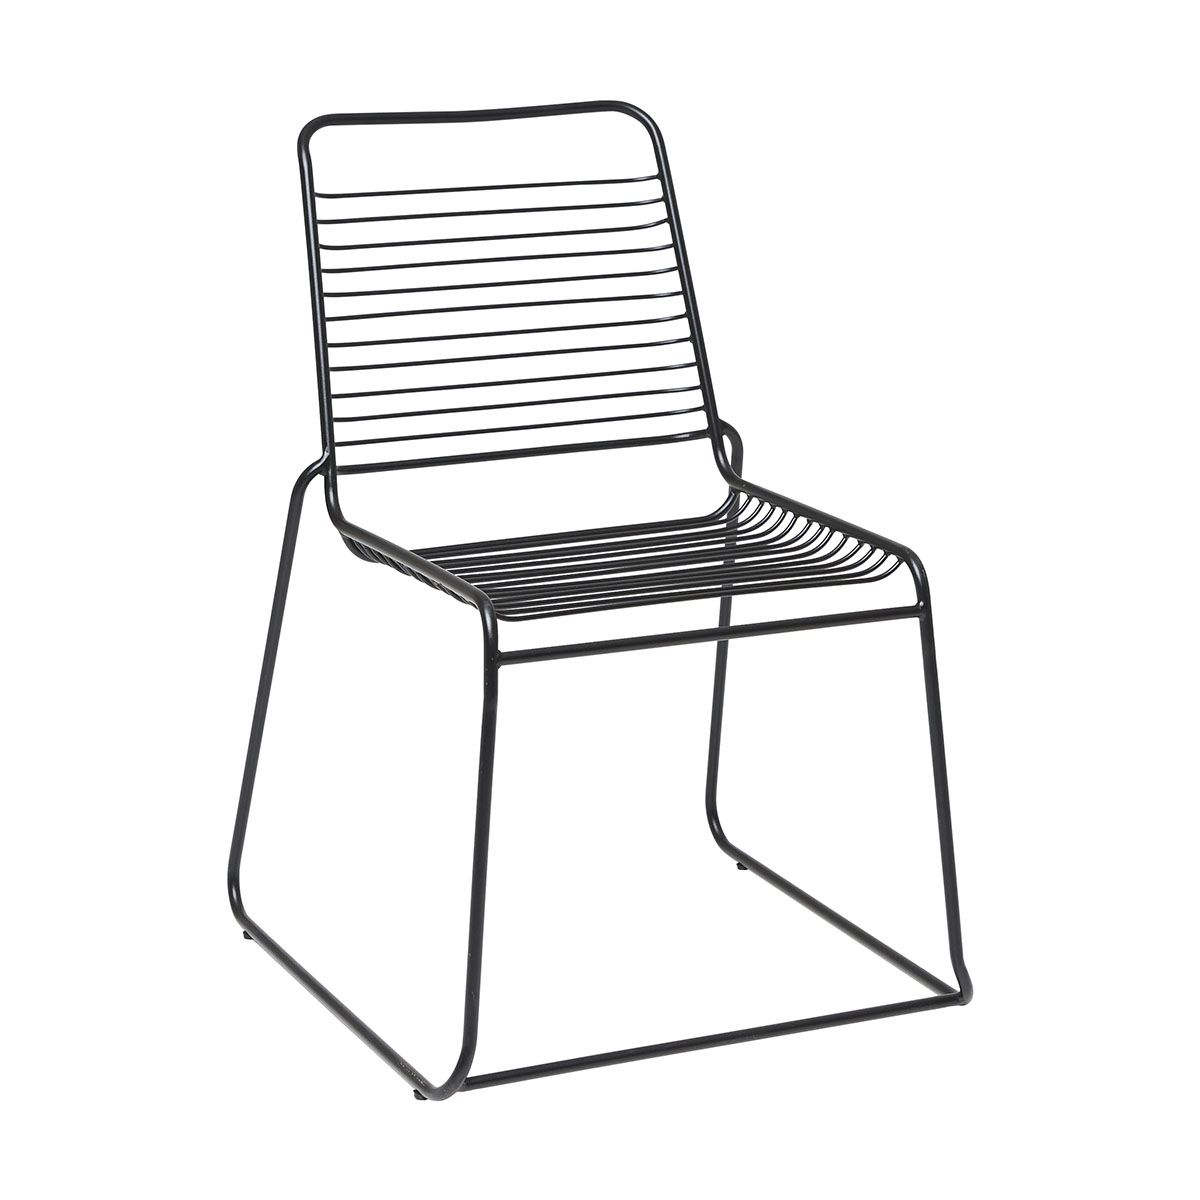 Bistro Chair Modern Outdoor Furniture Outdoor Tables And Chairs Patio Decor